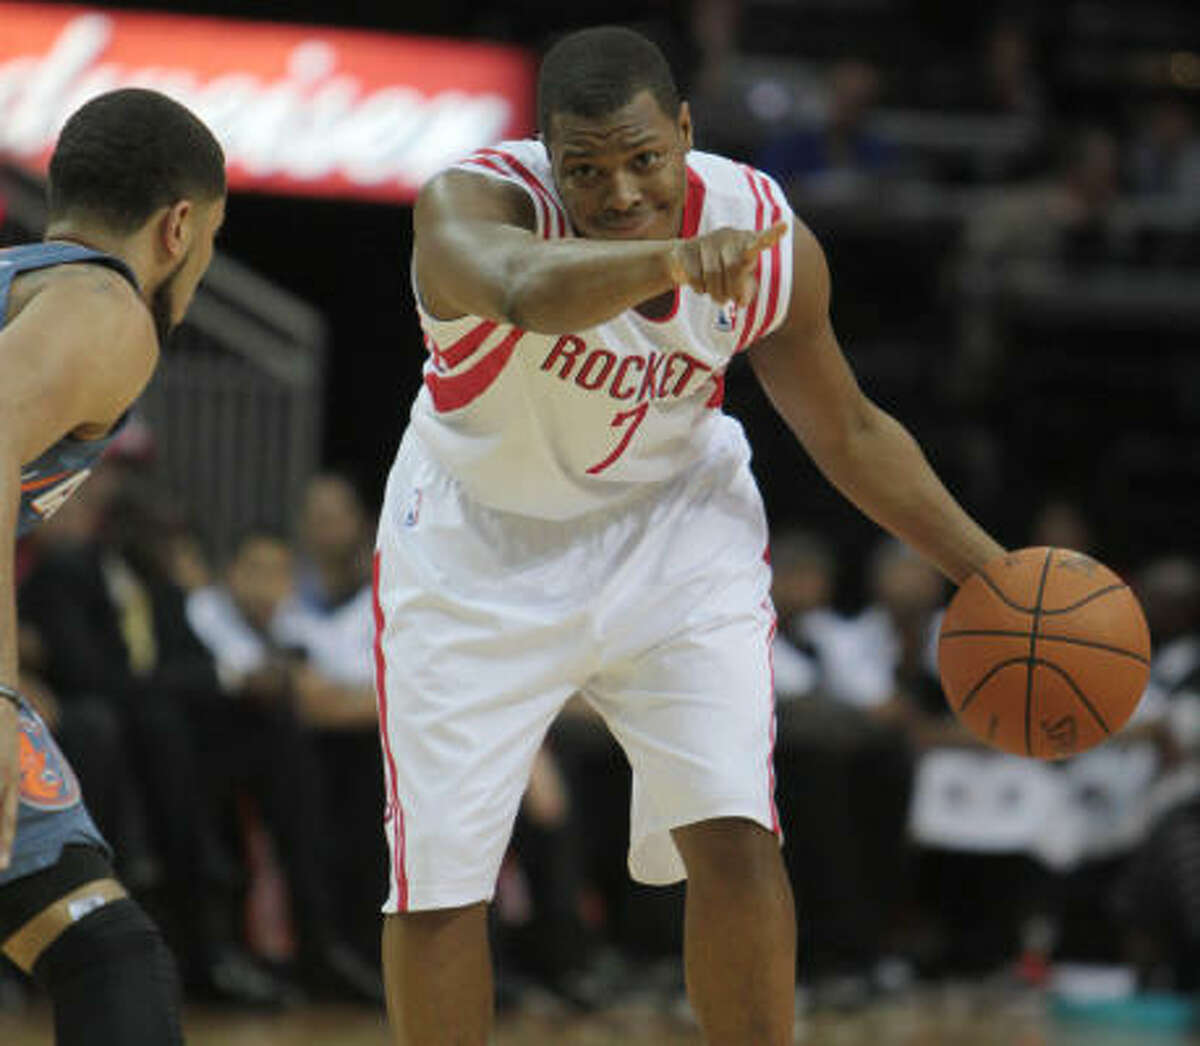 March 16: Rockets 94, Bobcats 78 Rockets guard Kyle Lowry directs the offense while approaching Bobcats guard D.J. Augustin in the first half. Lowry finished with 11 points, nine rebounds and six assists.